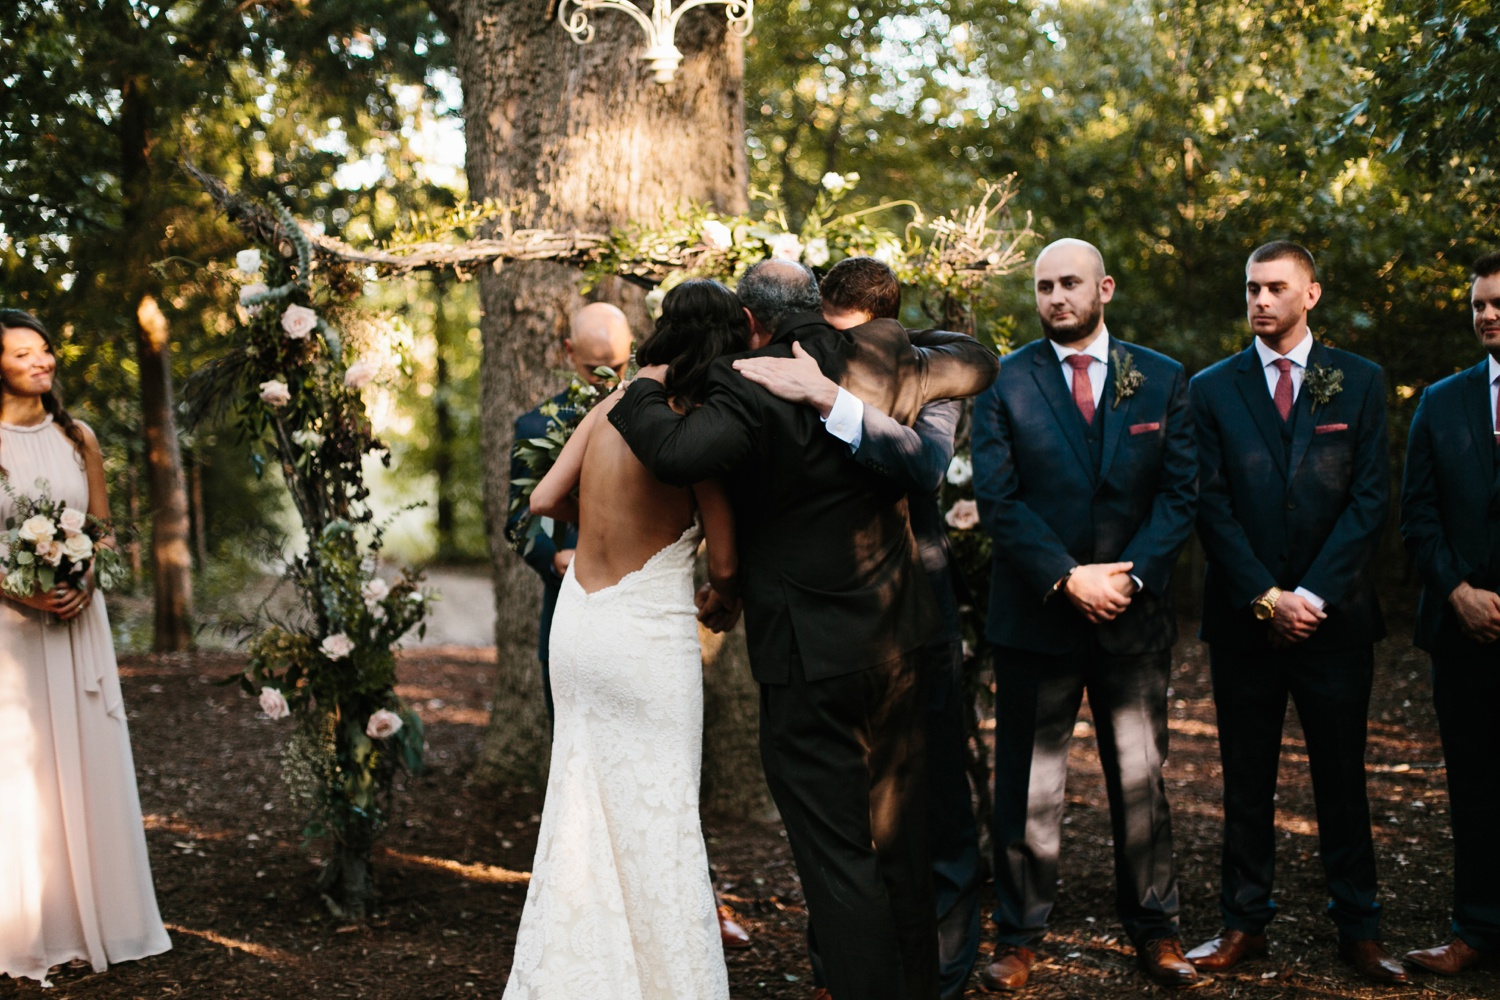 Erica + Henry | a bohemian inspired wedding at Chandlers Gardens in Salina, TX by North Texas Wedding Photographer Rachel Meagan Photography 072